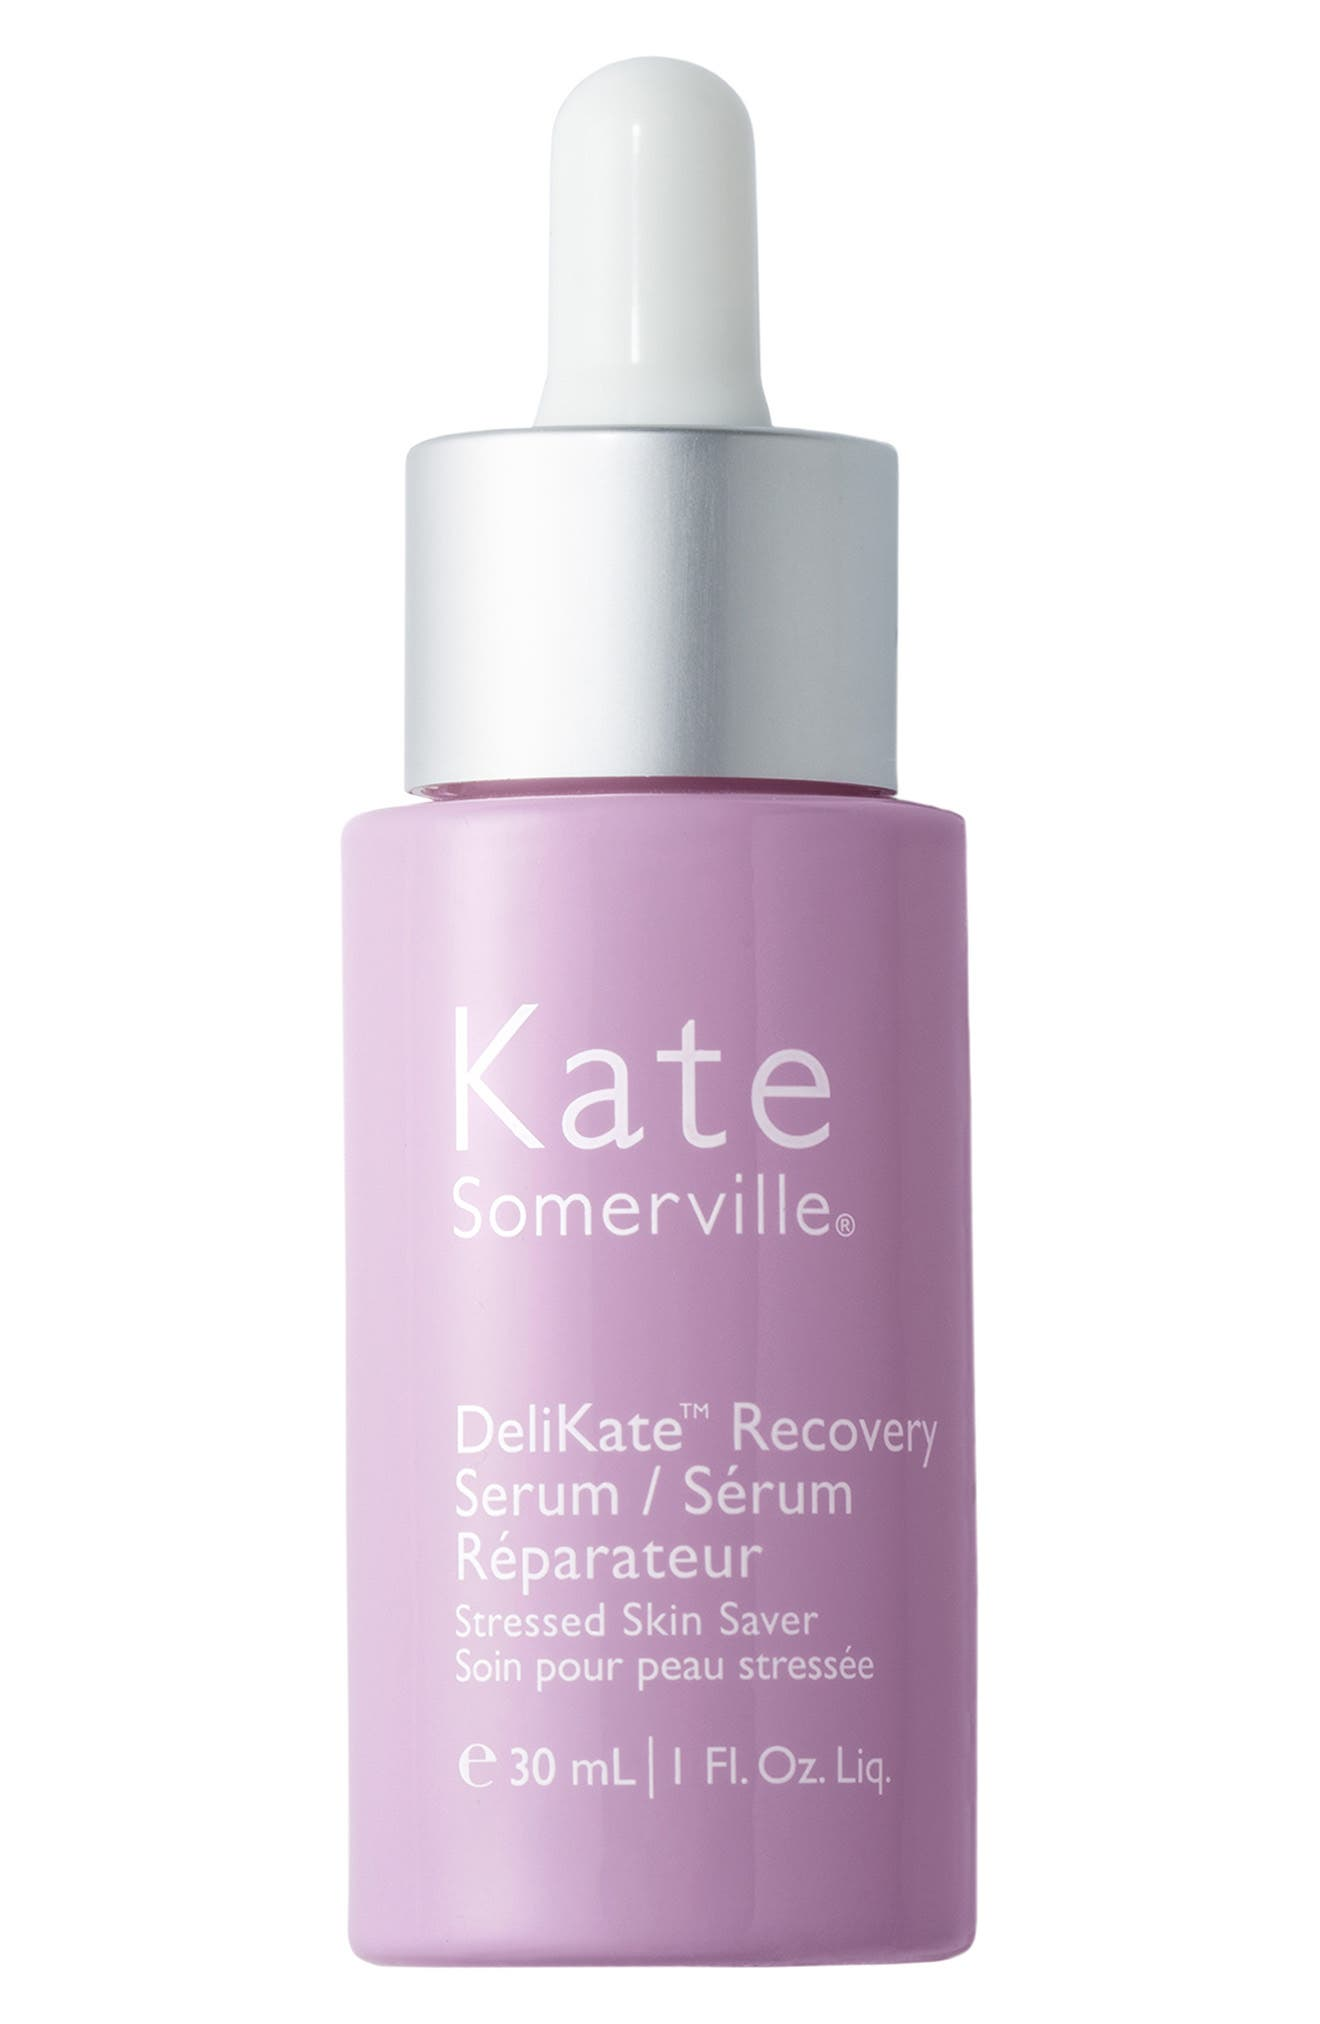 Kate Somerville Delikate(TM) Recovery Serum